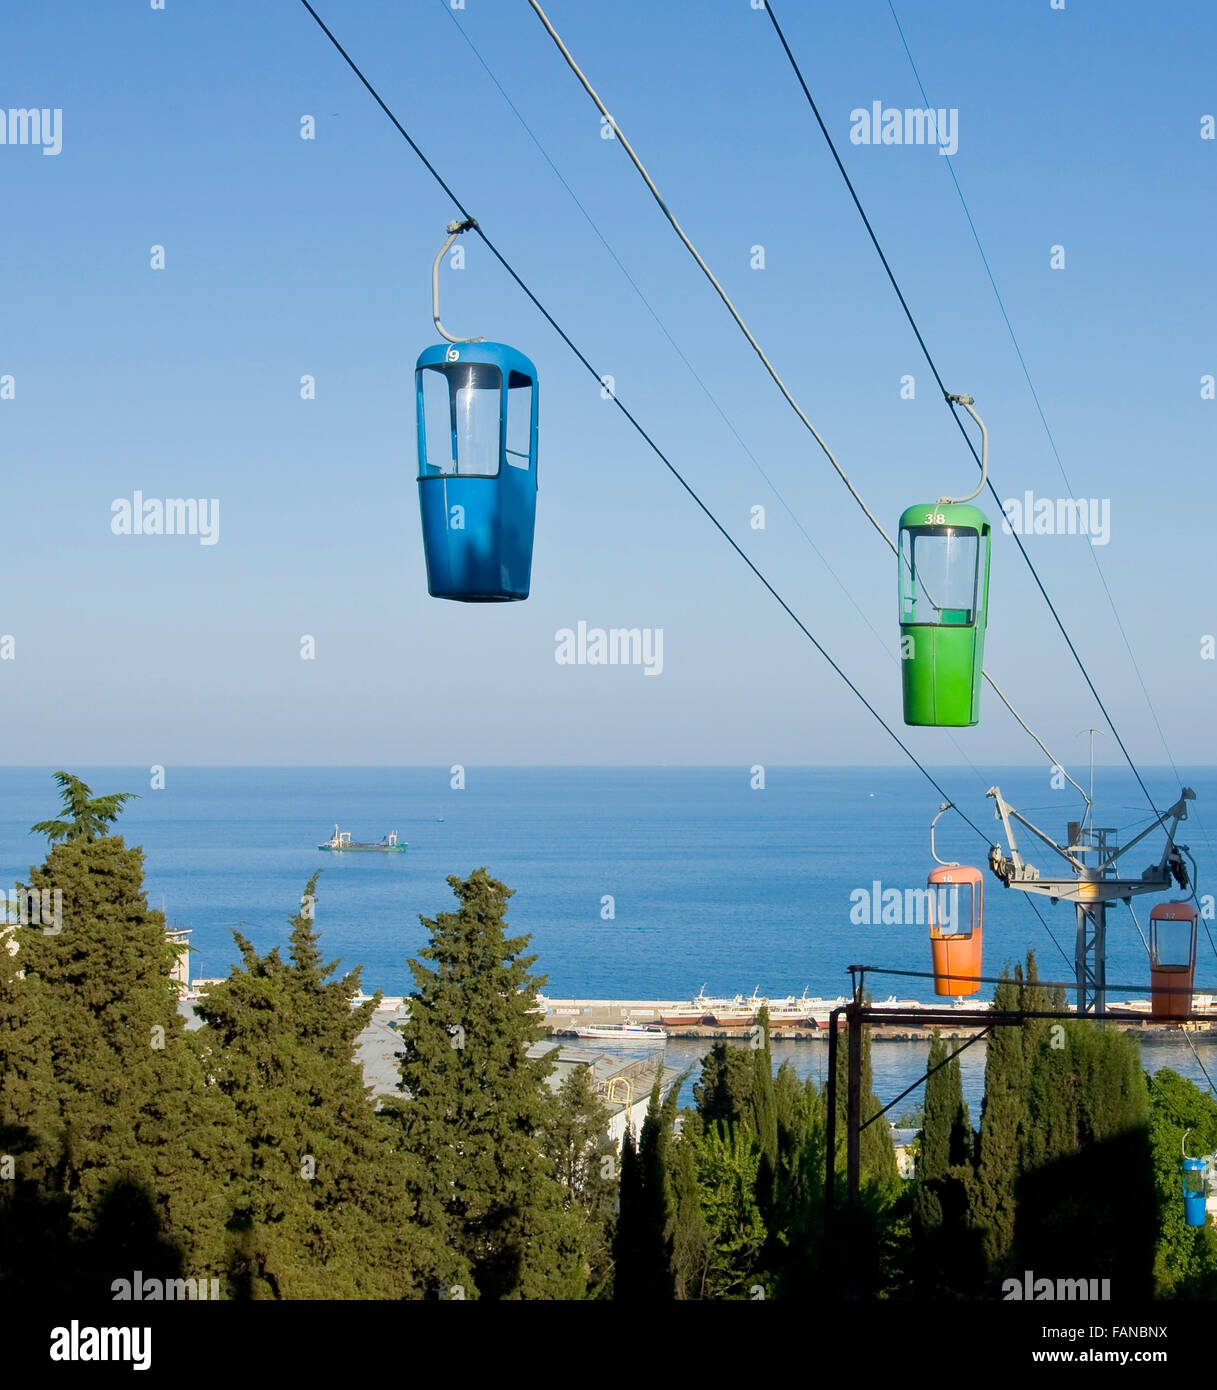 Cable-way in town Yalta, famous resort in region Crimea on Black sea ...